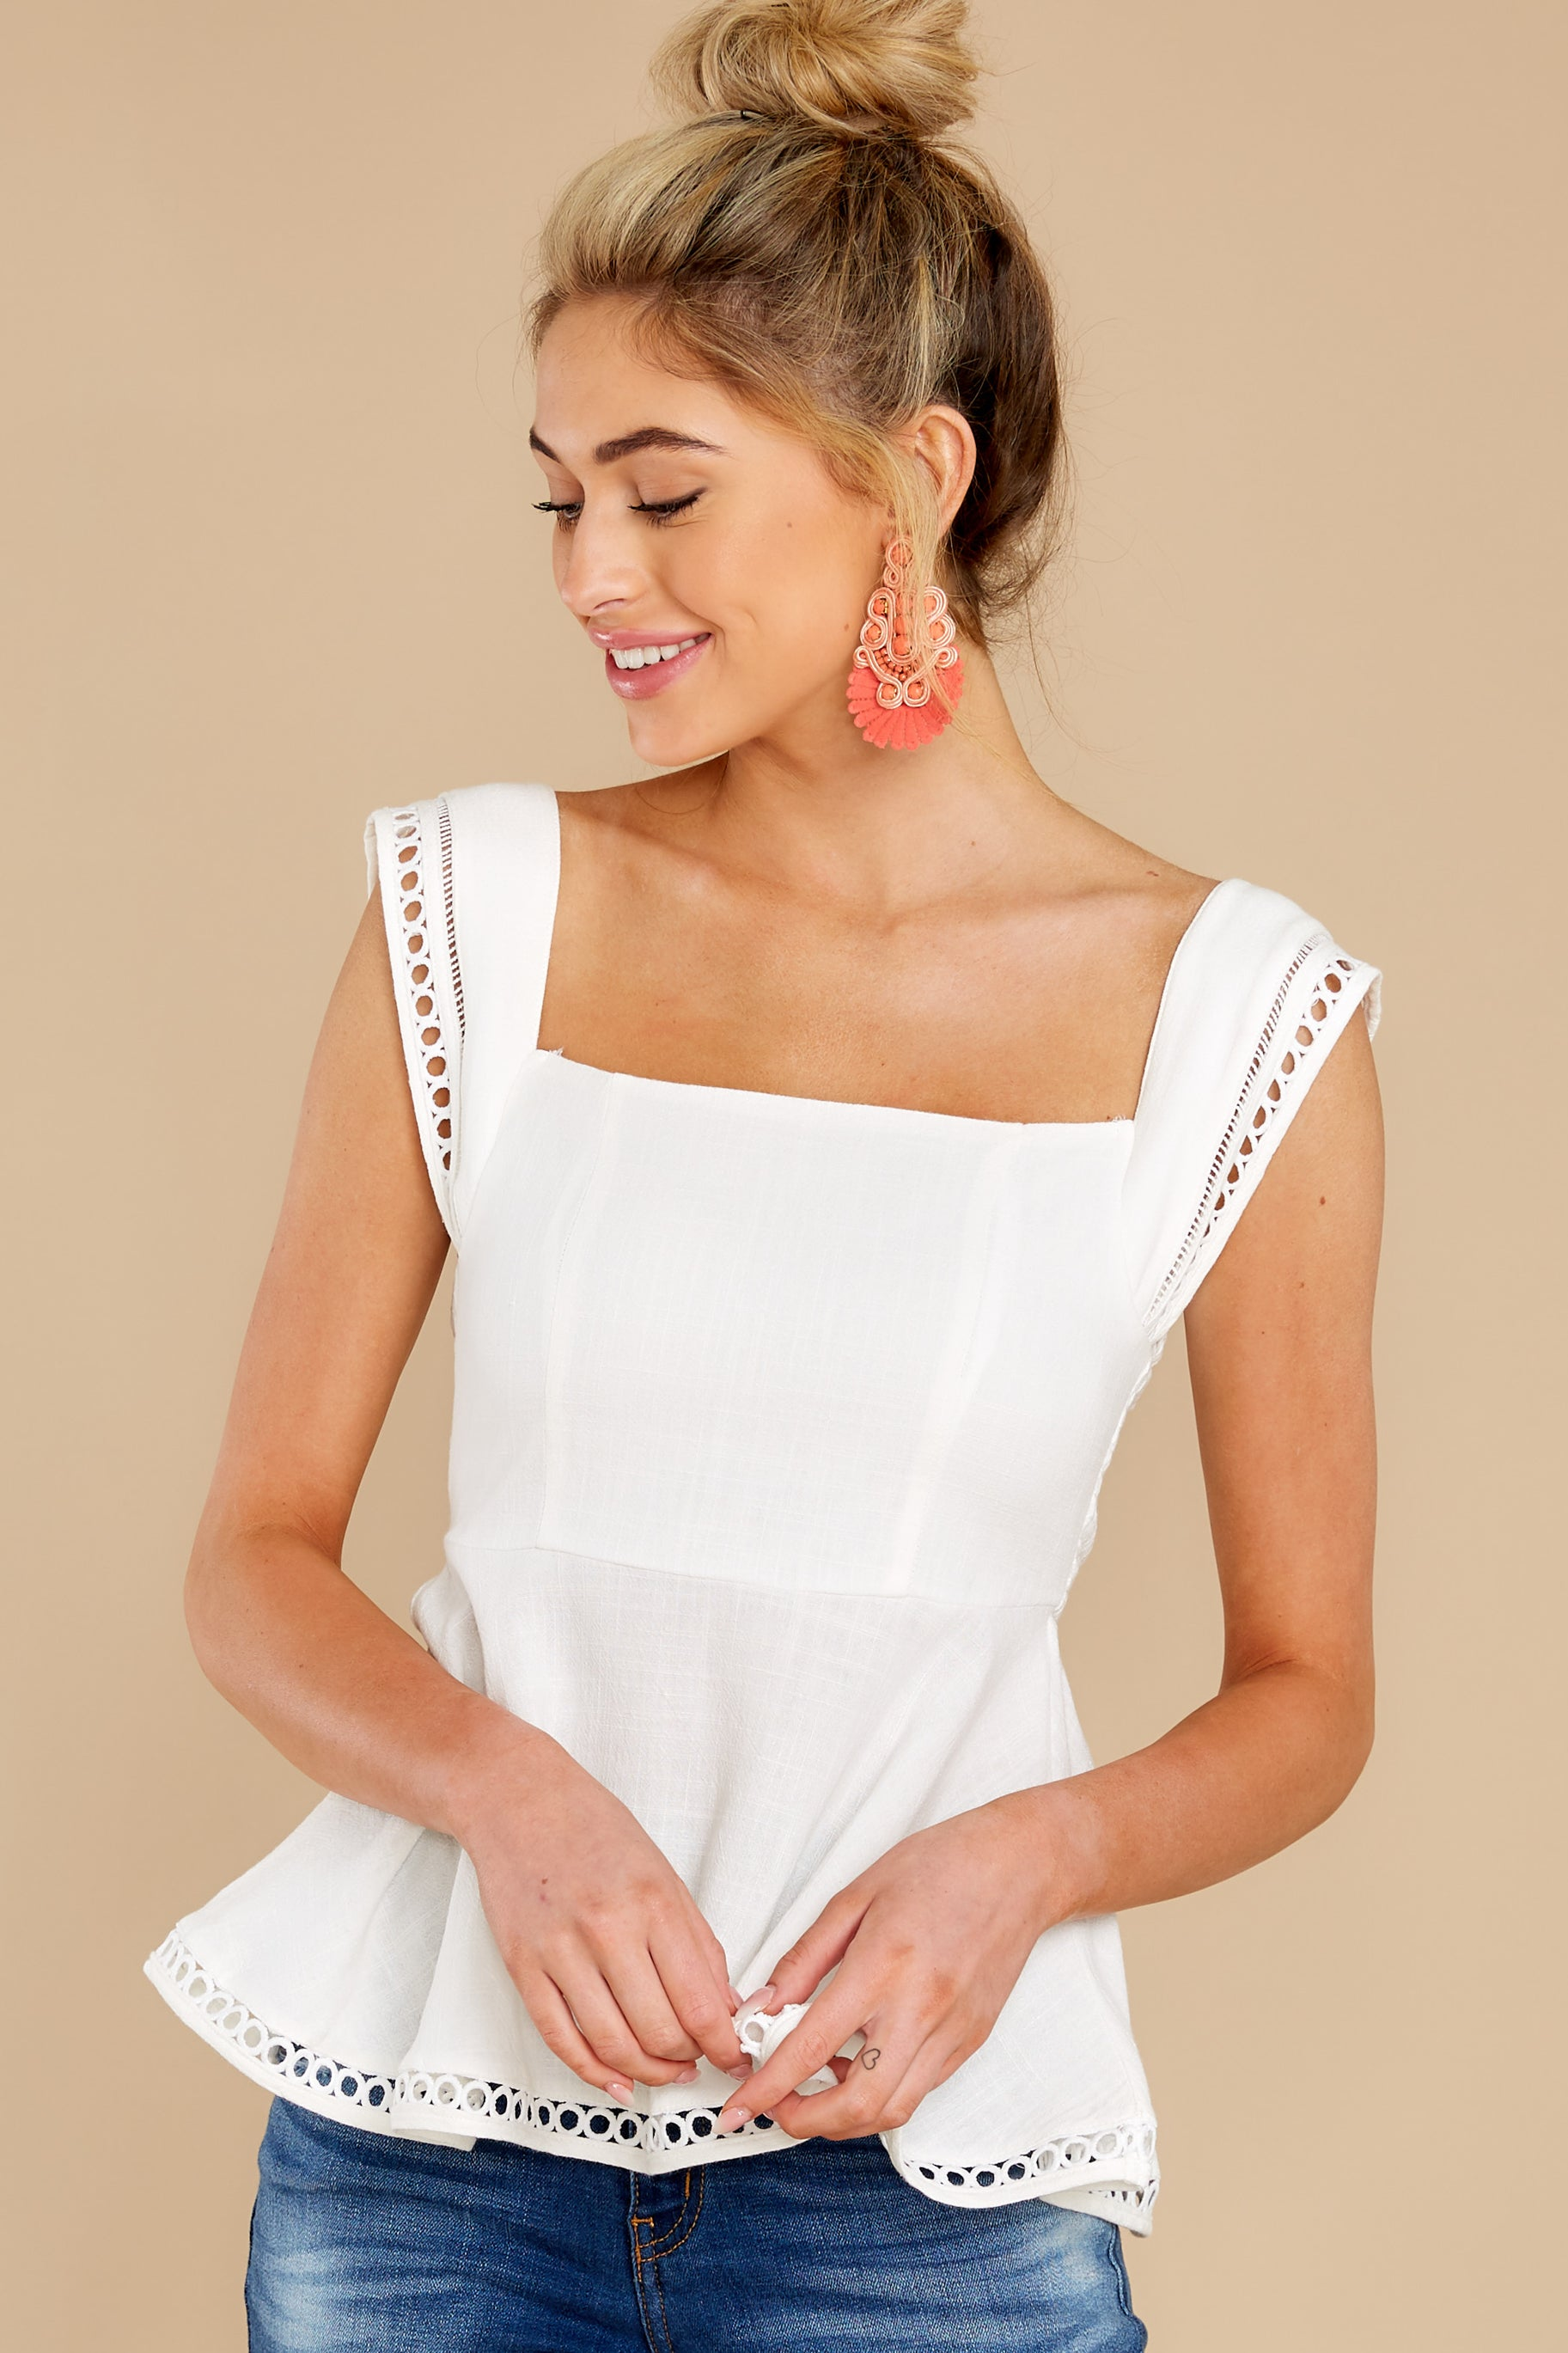 1 Looking Divine White Eyelet Top at reddress.com